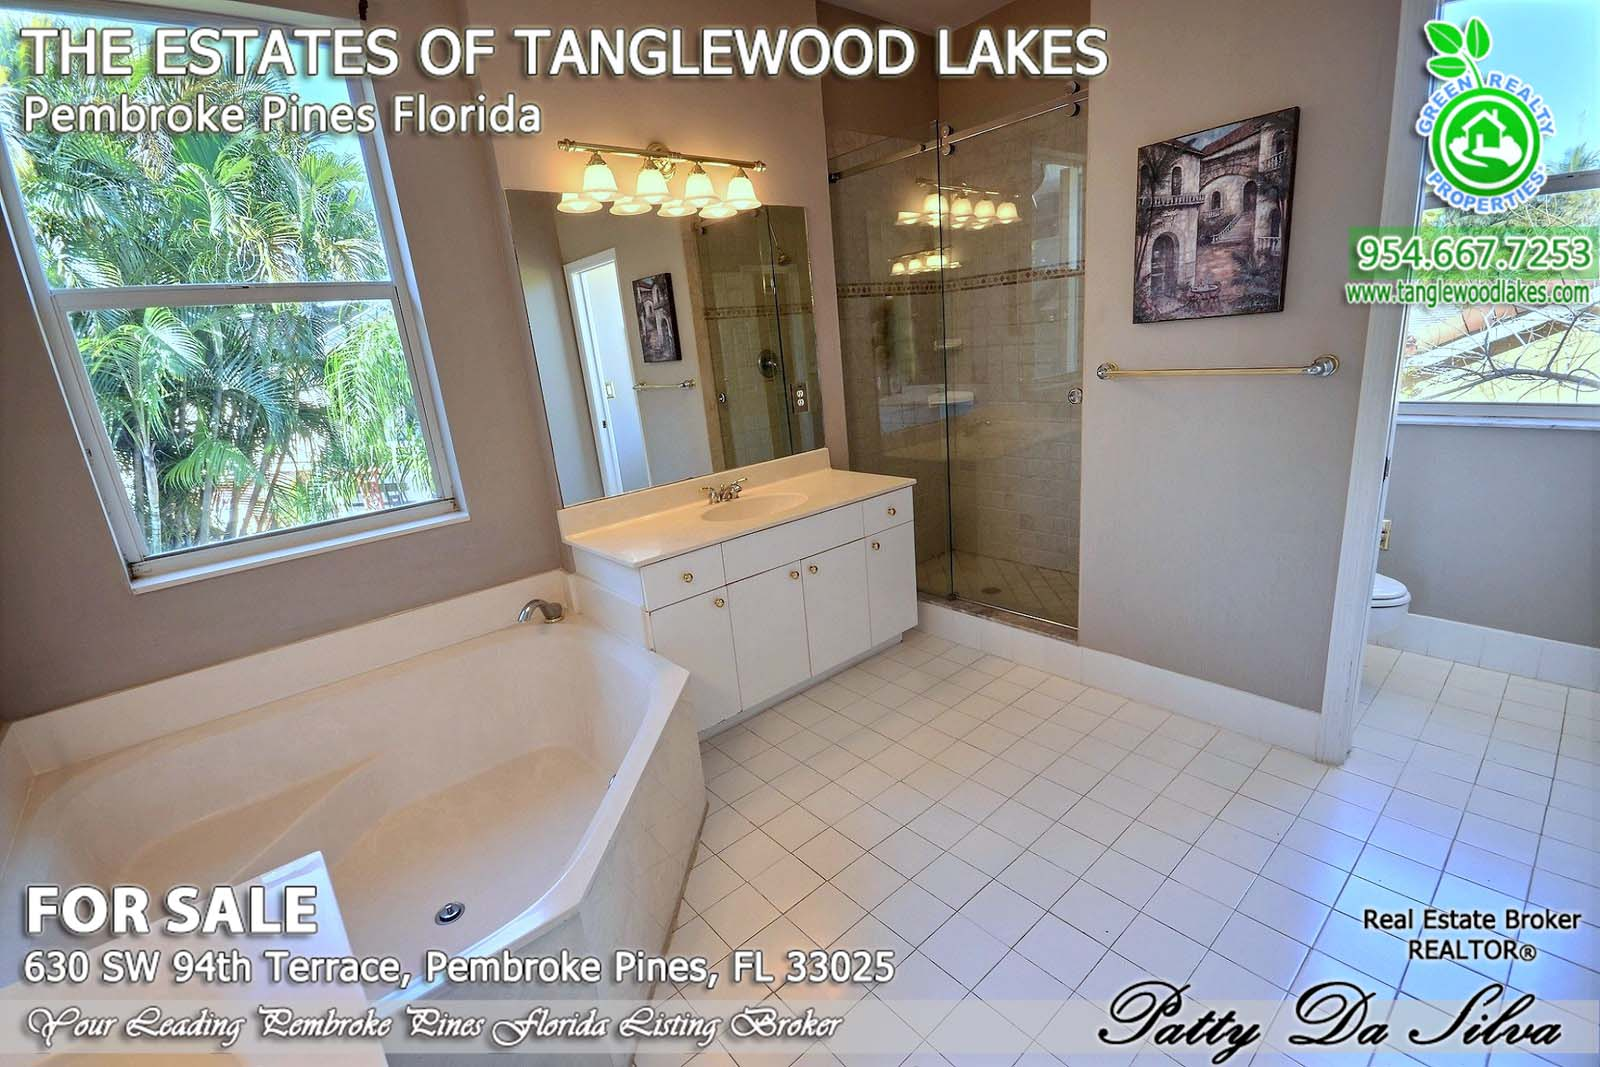 Home Values in Tanglewood Lakes in Pembroke Pines FL